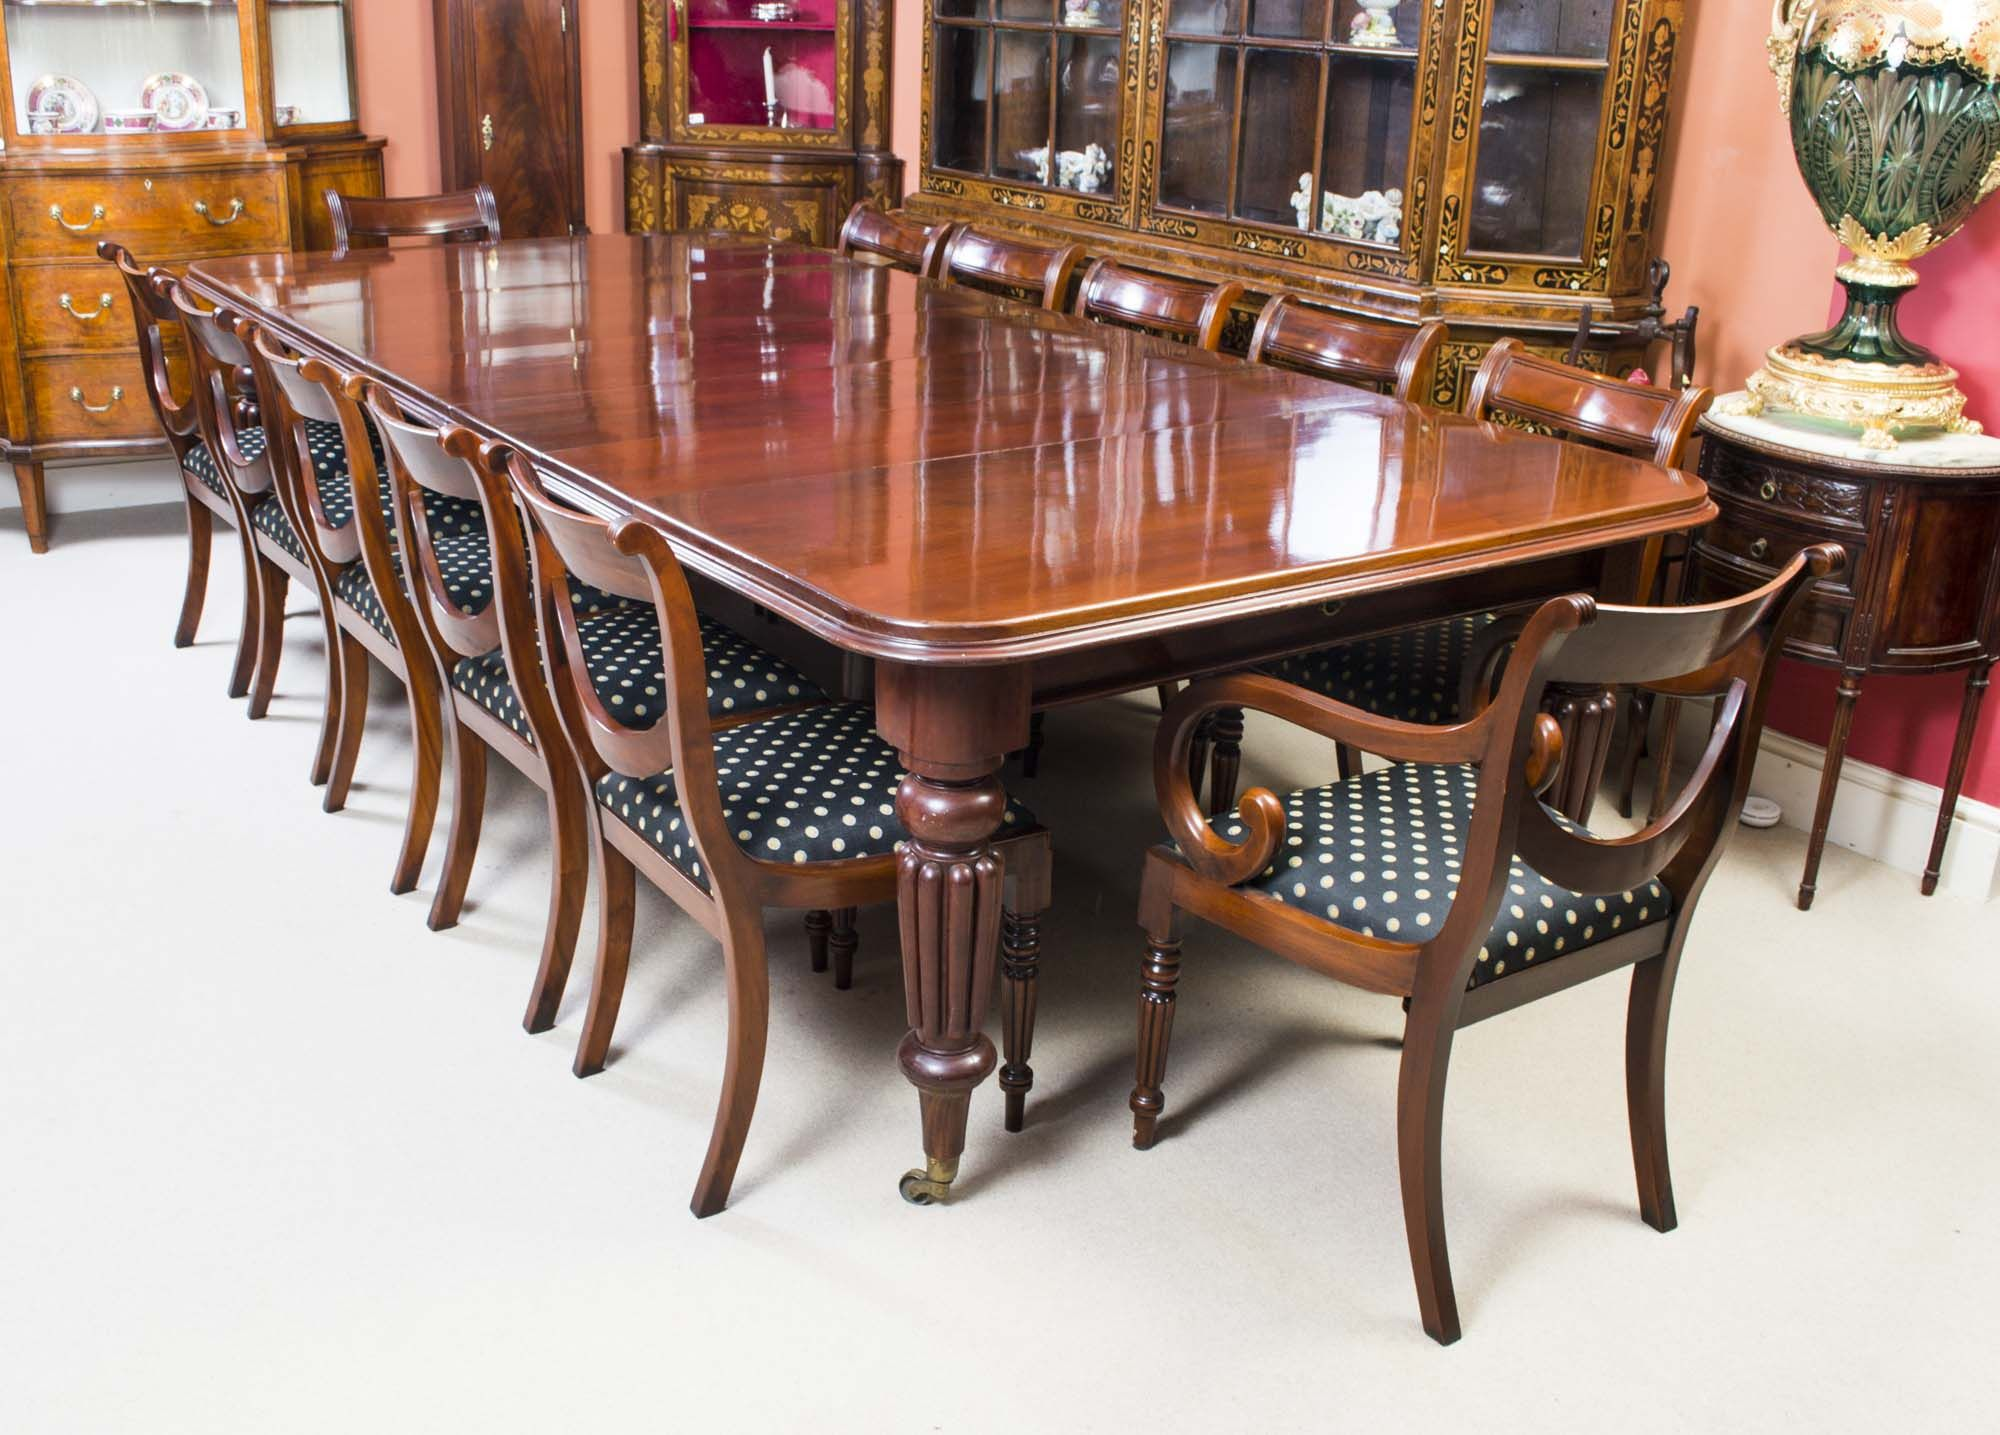 An antique Victorian dining table and chair set fit for a queen ...